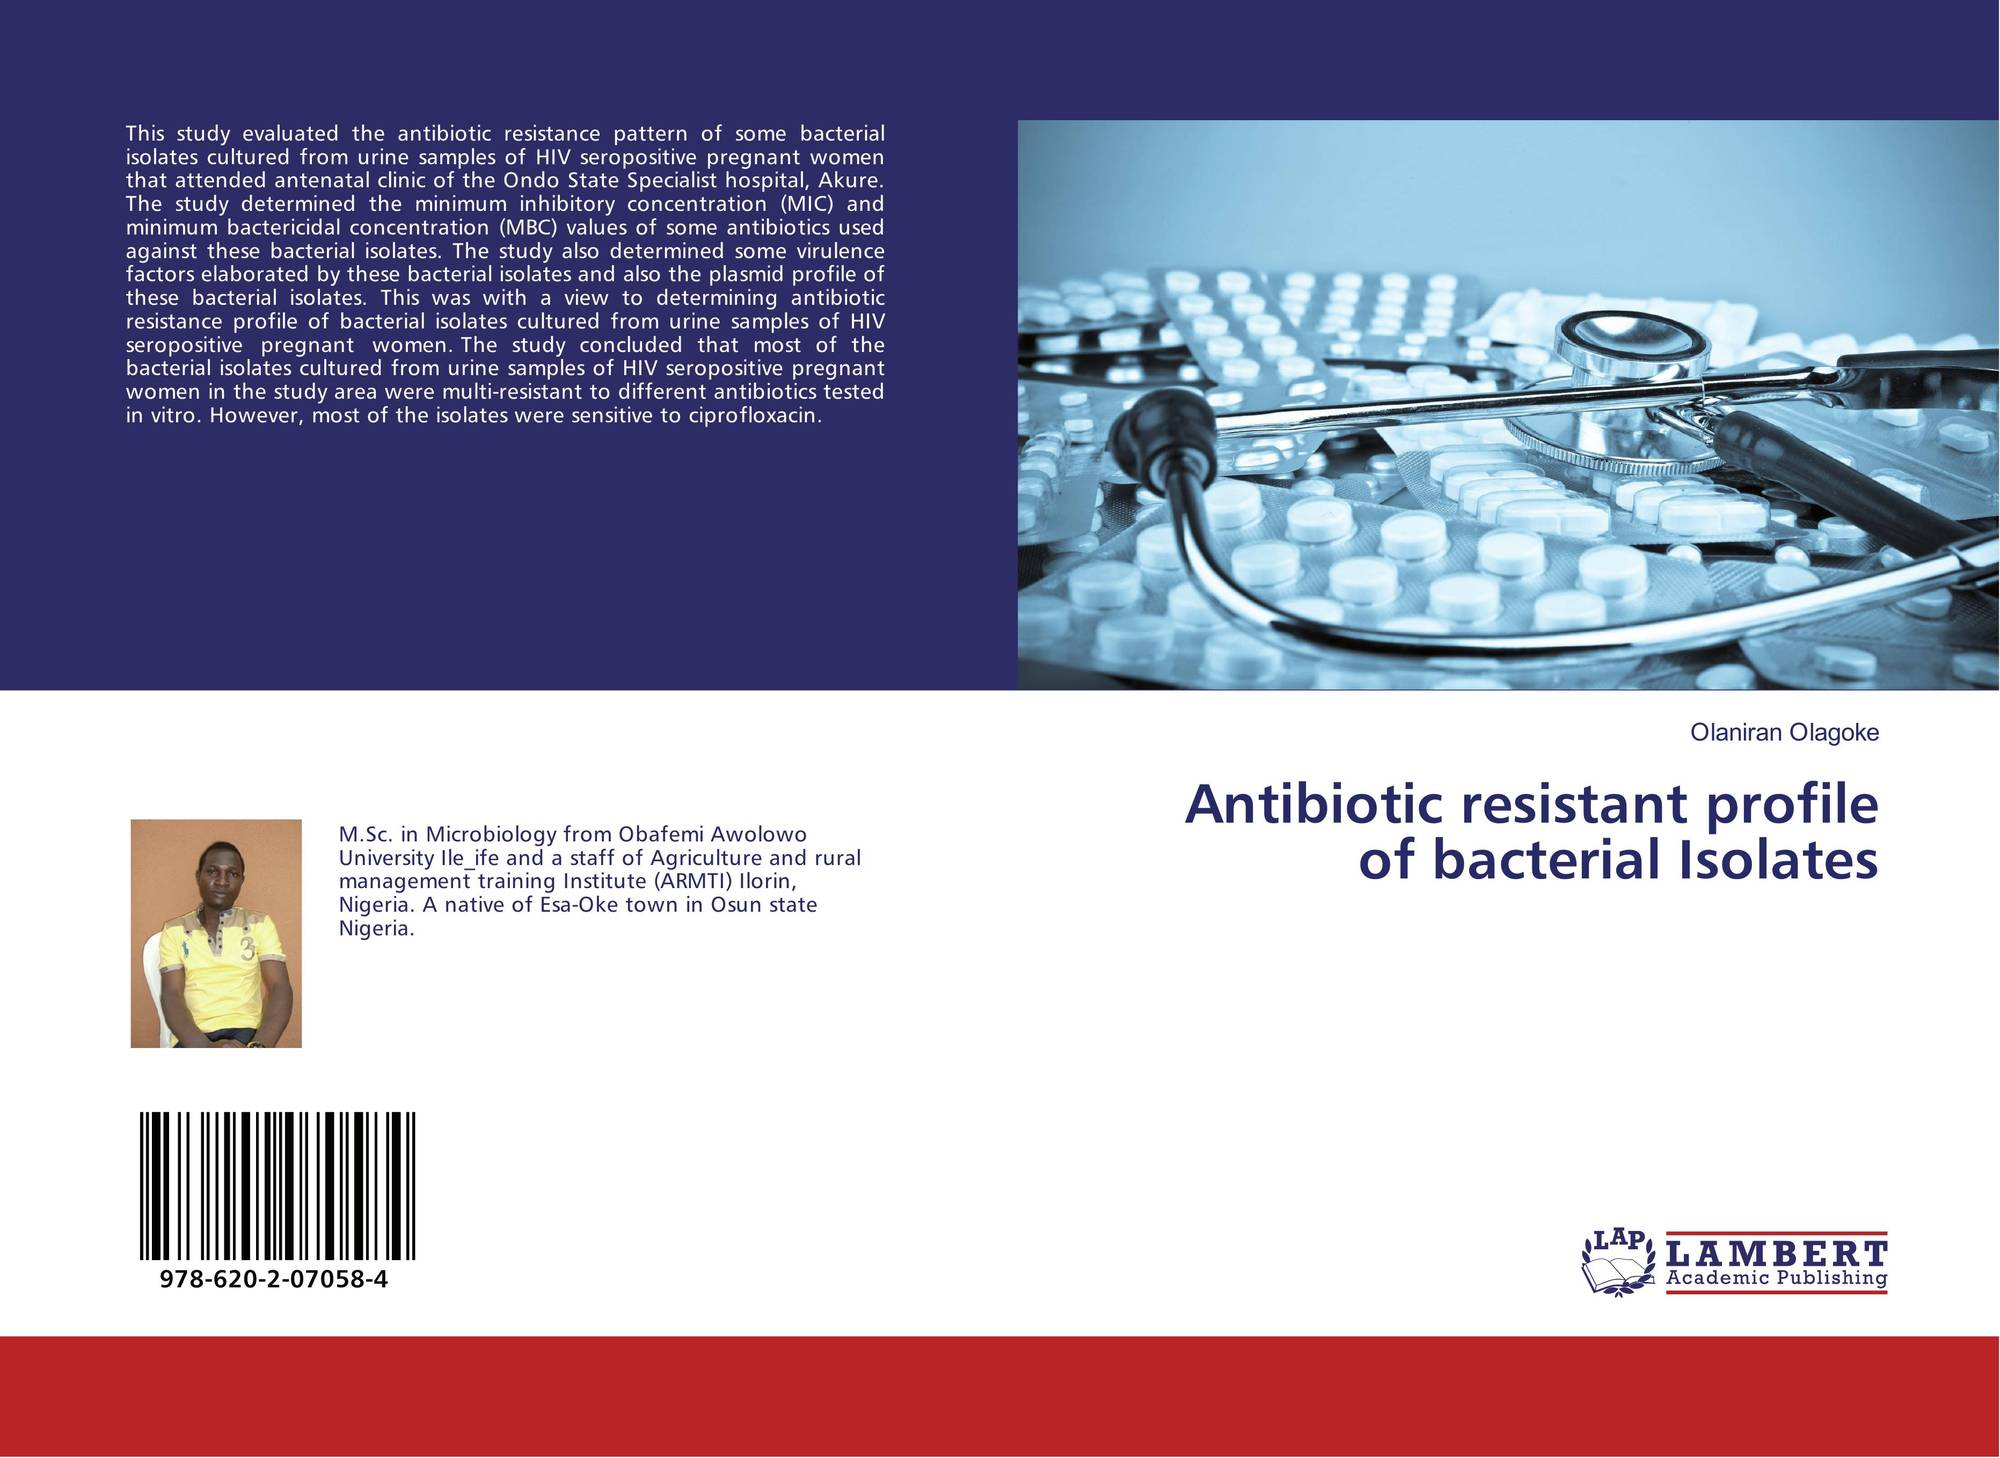 a description of testing antibiotics on different bacterias to determine its effect